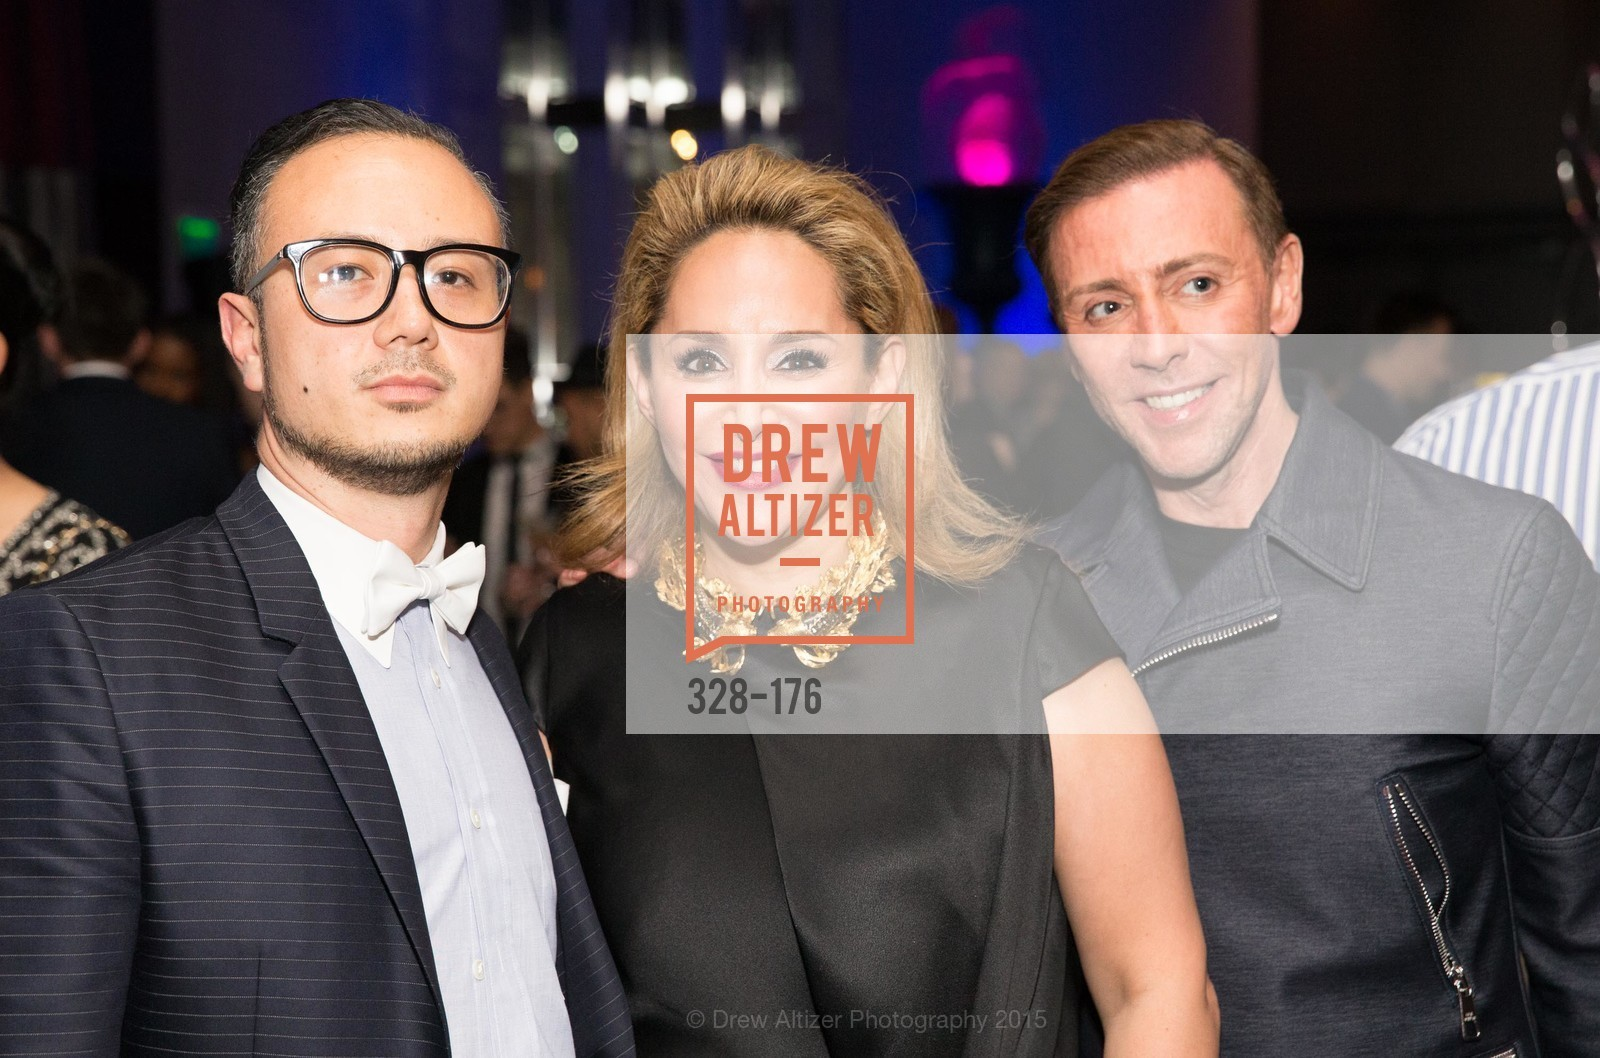 Anthony Koenig, Brenda Zarate, Mark Rhoades, VIP Pride Celebration 2015, St. Regis, June 18th, 2015,Drew Altizer, Drew Altizer Photography, full-service event agency, private events, San Francisco photographer, photographer California